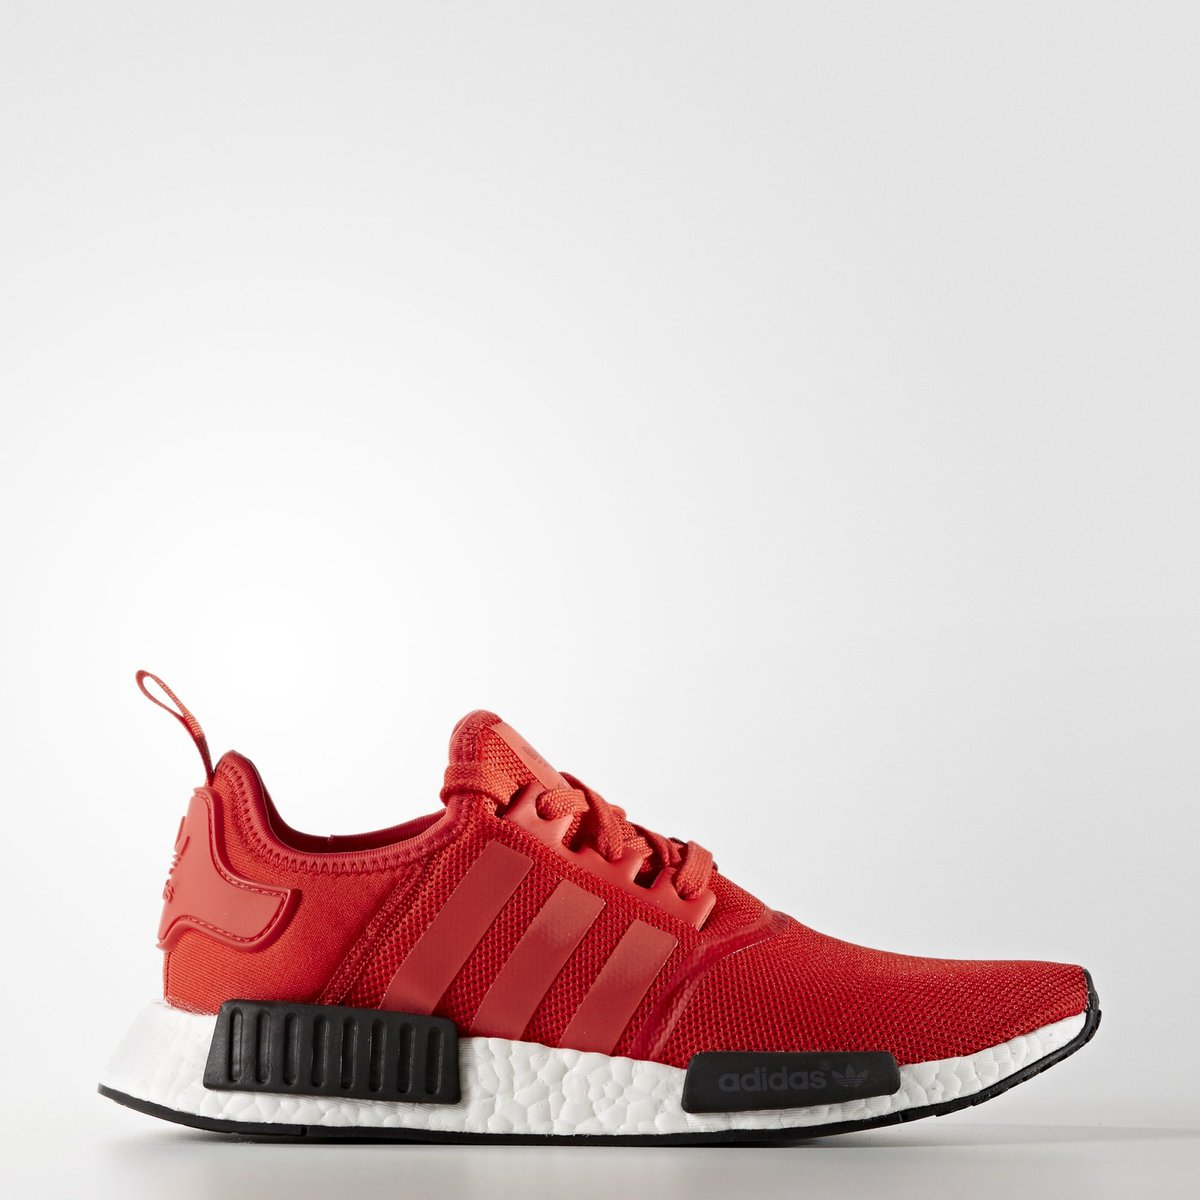 red white black nmd